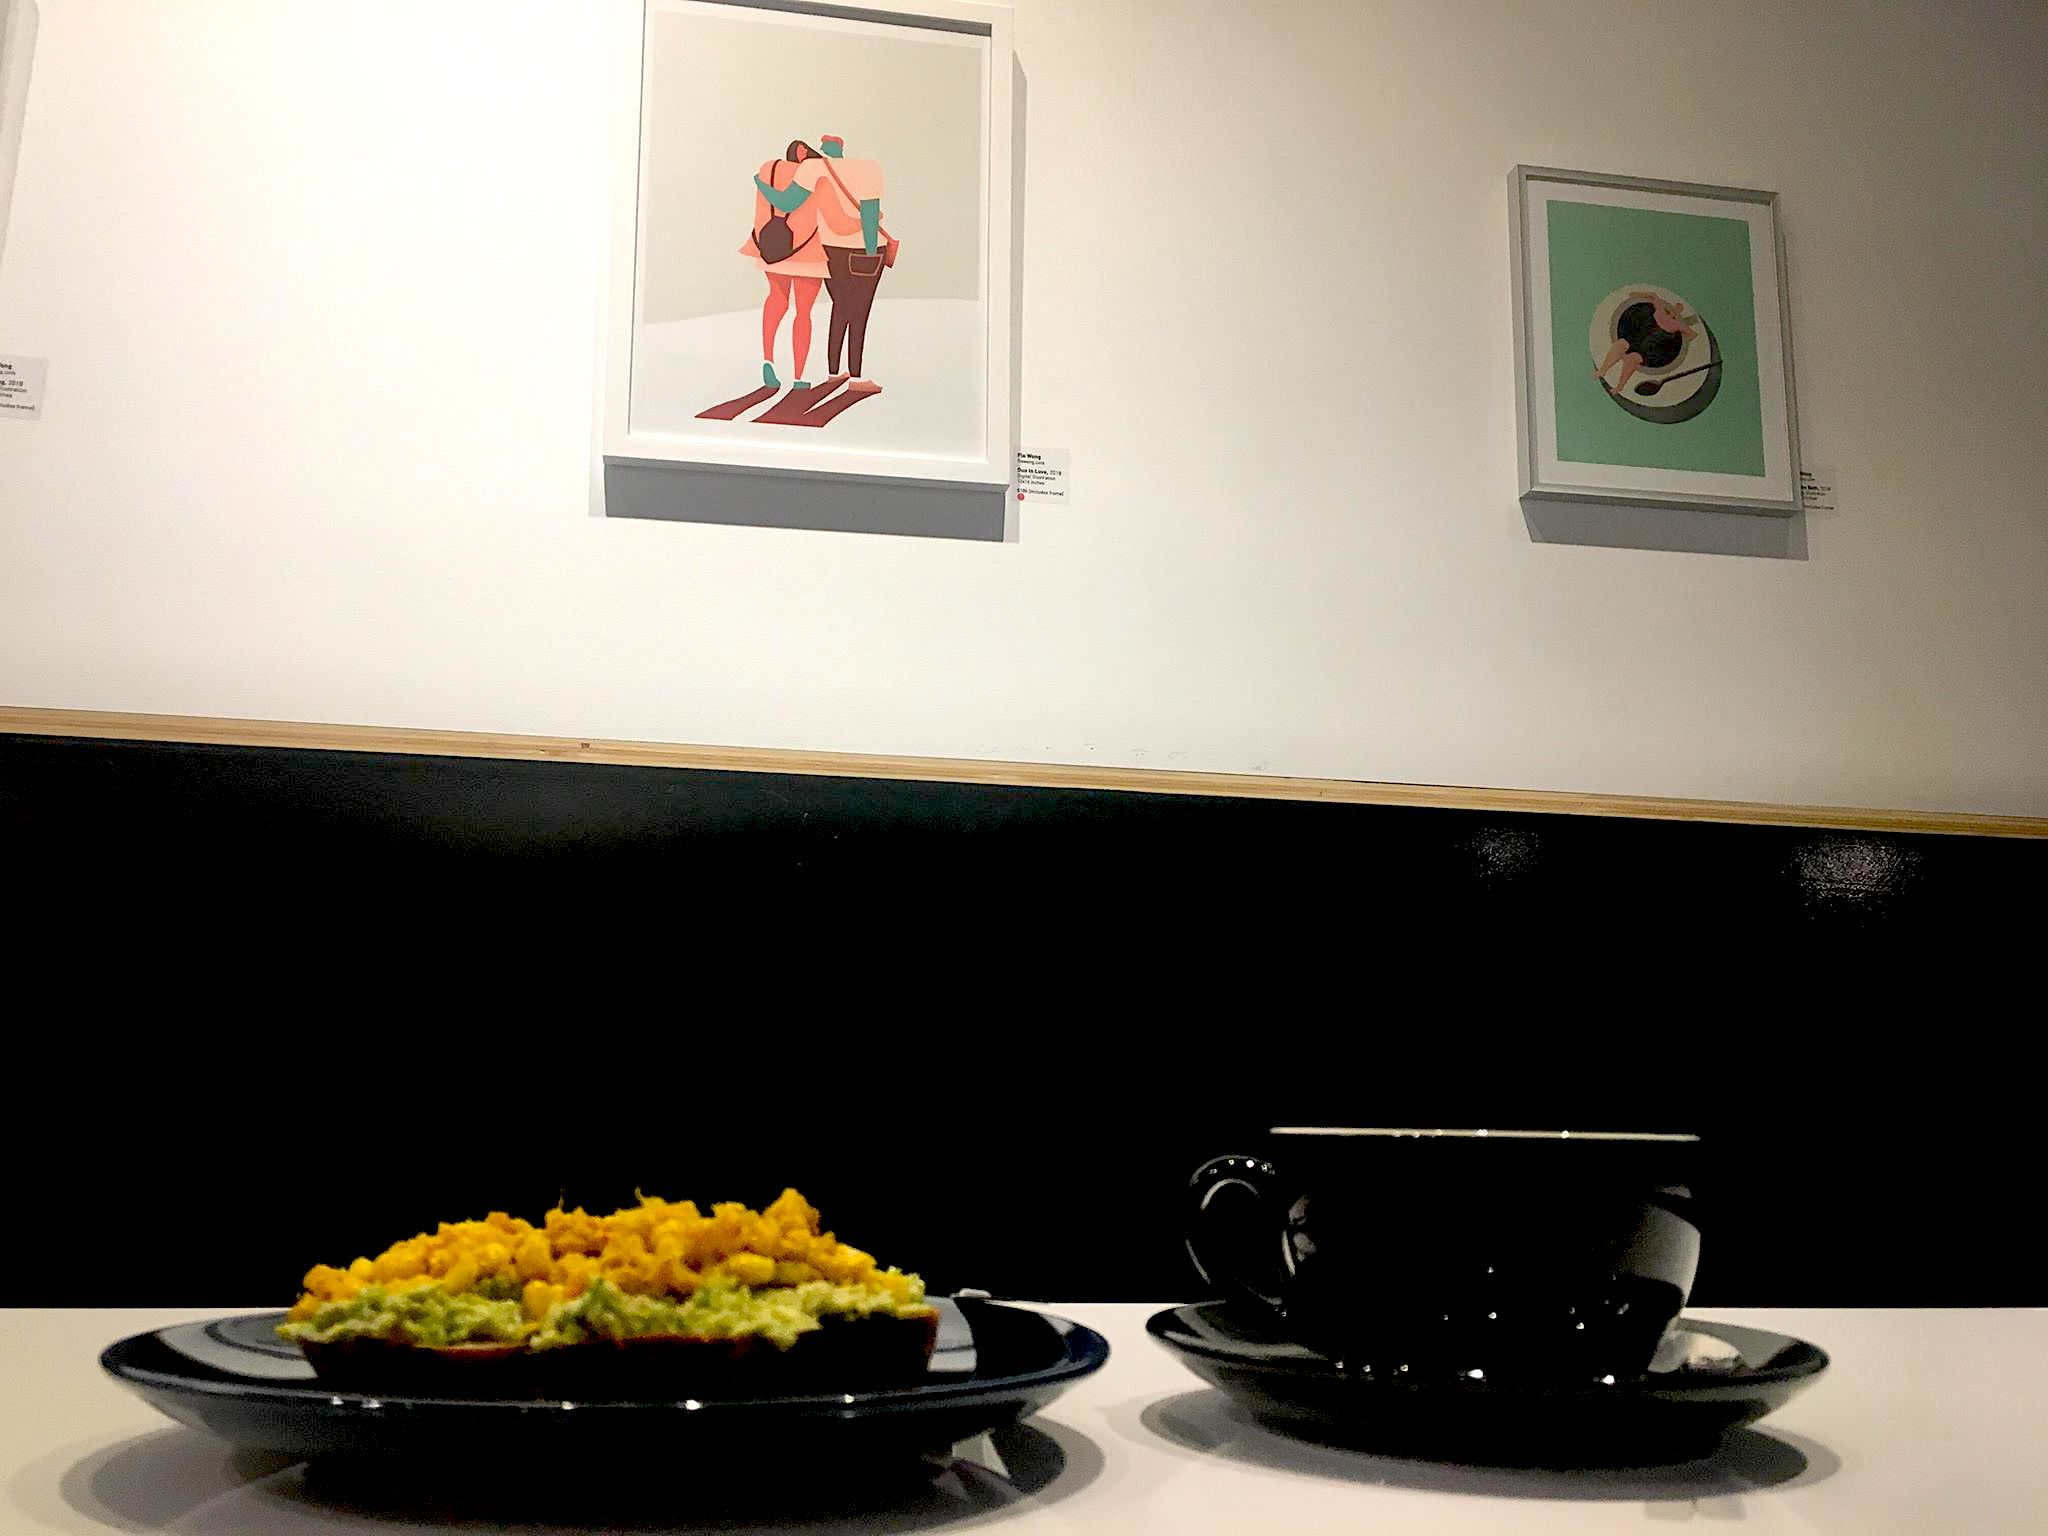 A snapshot of the coffee shop, with my framed images on the walls.